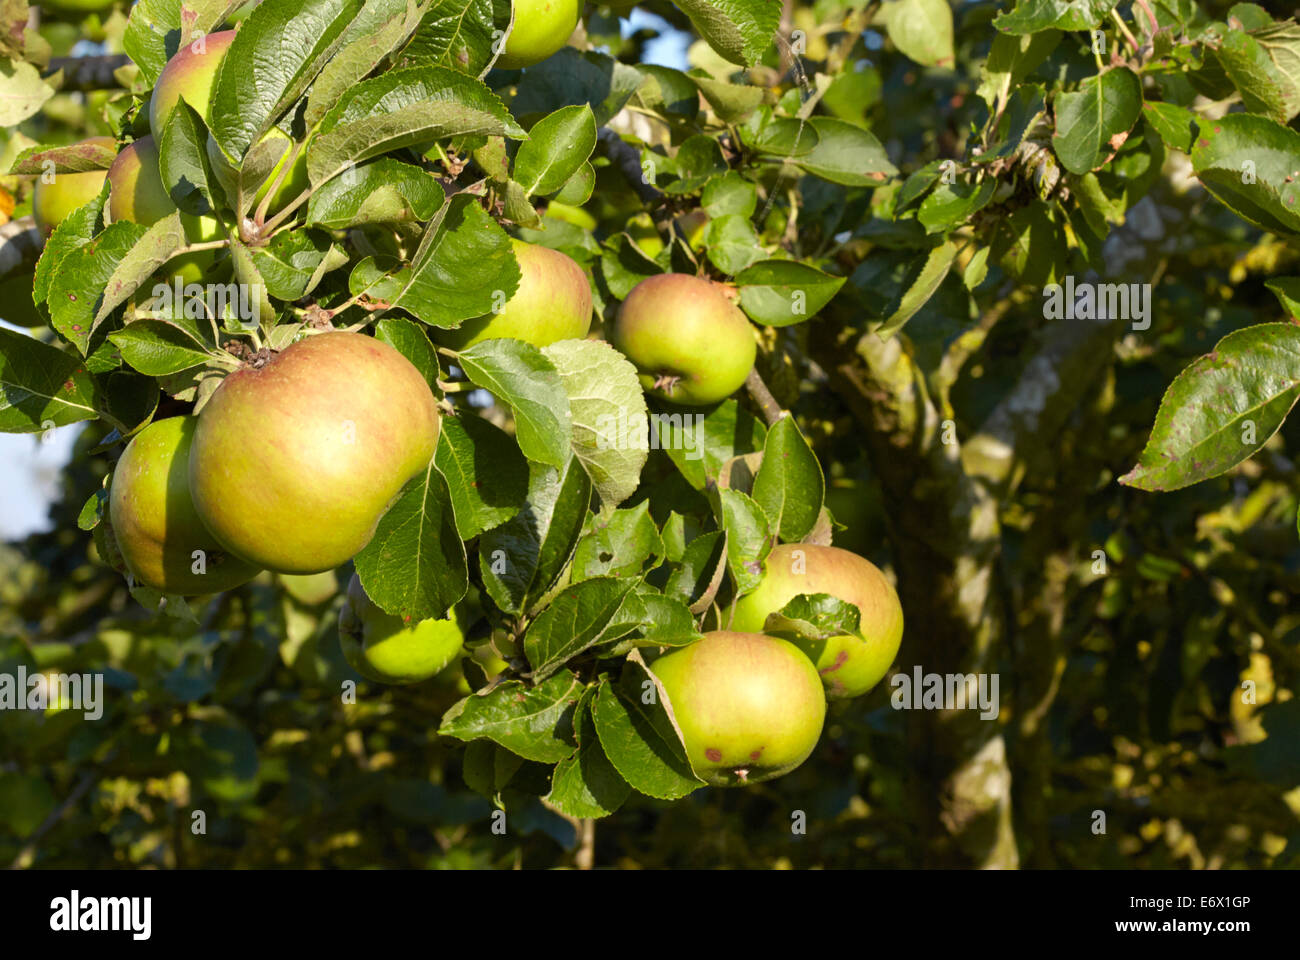 Bramley apples ripening on an old apple tree - Stock Image